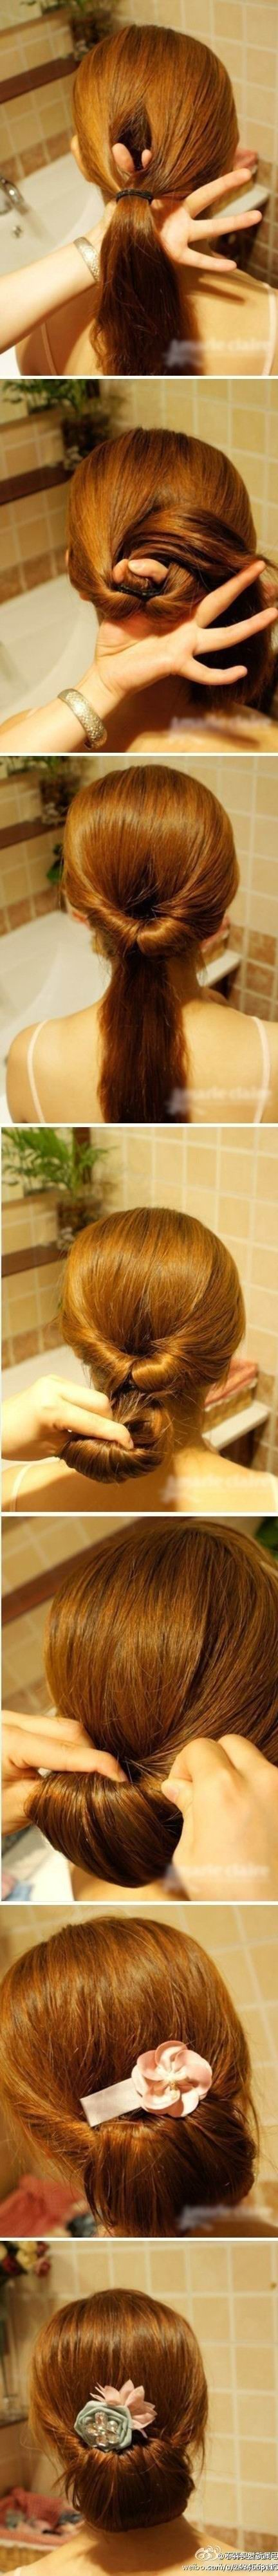 Hair Tutorial - How to do a Cute Chigon Updo